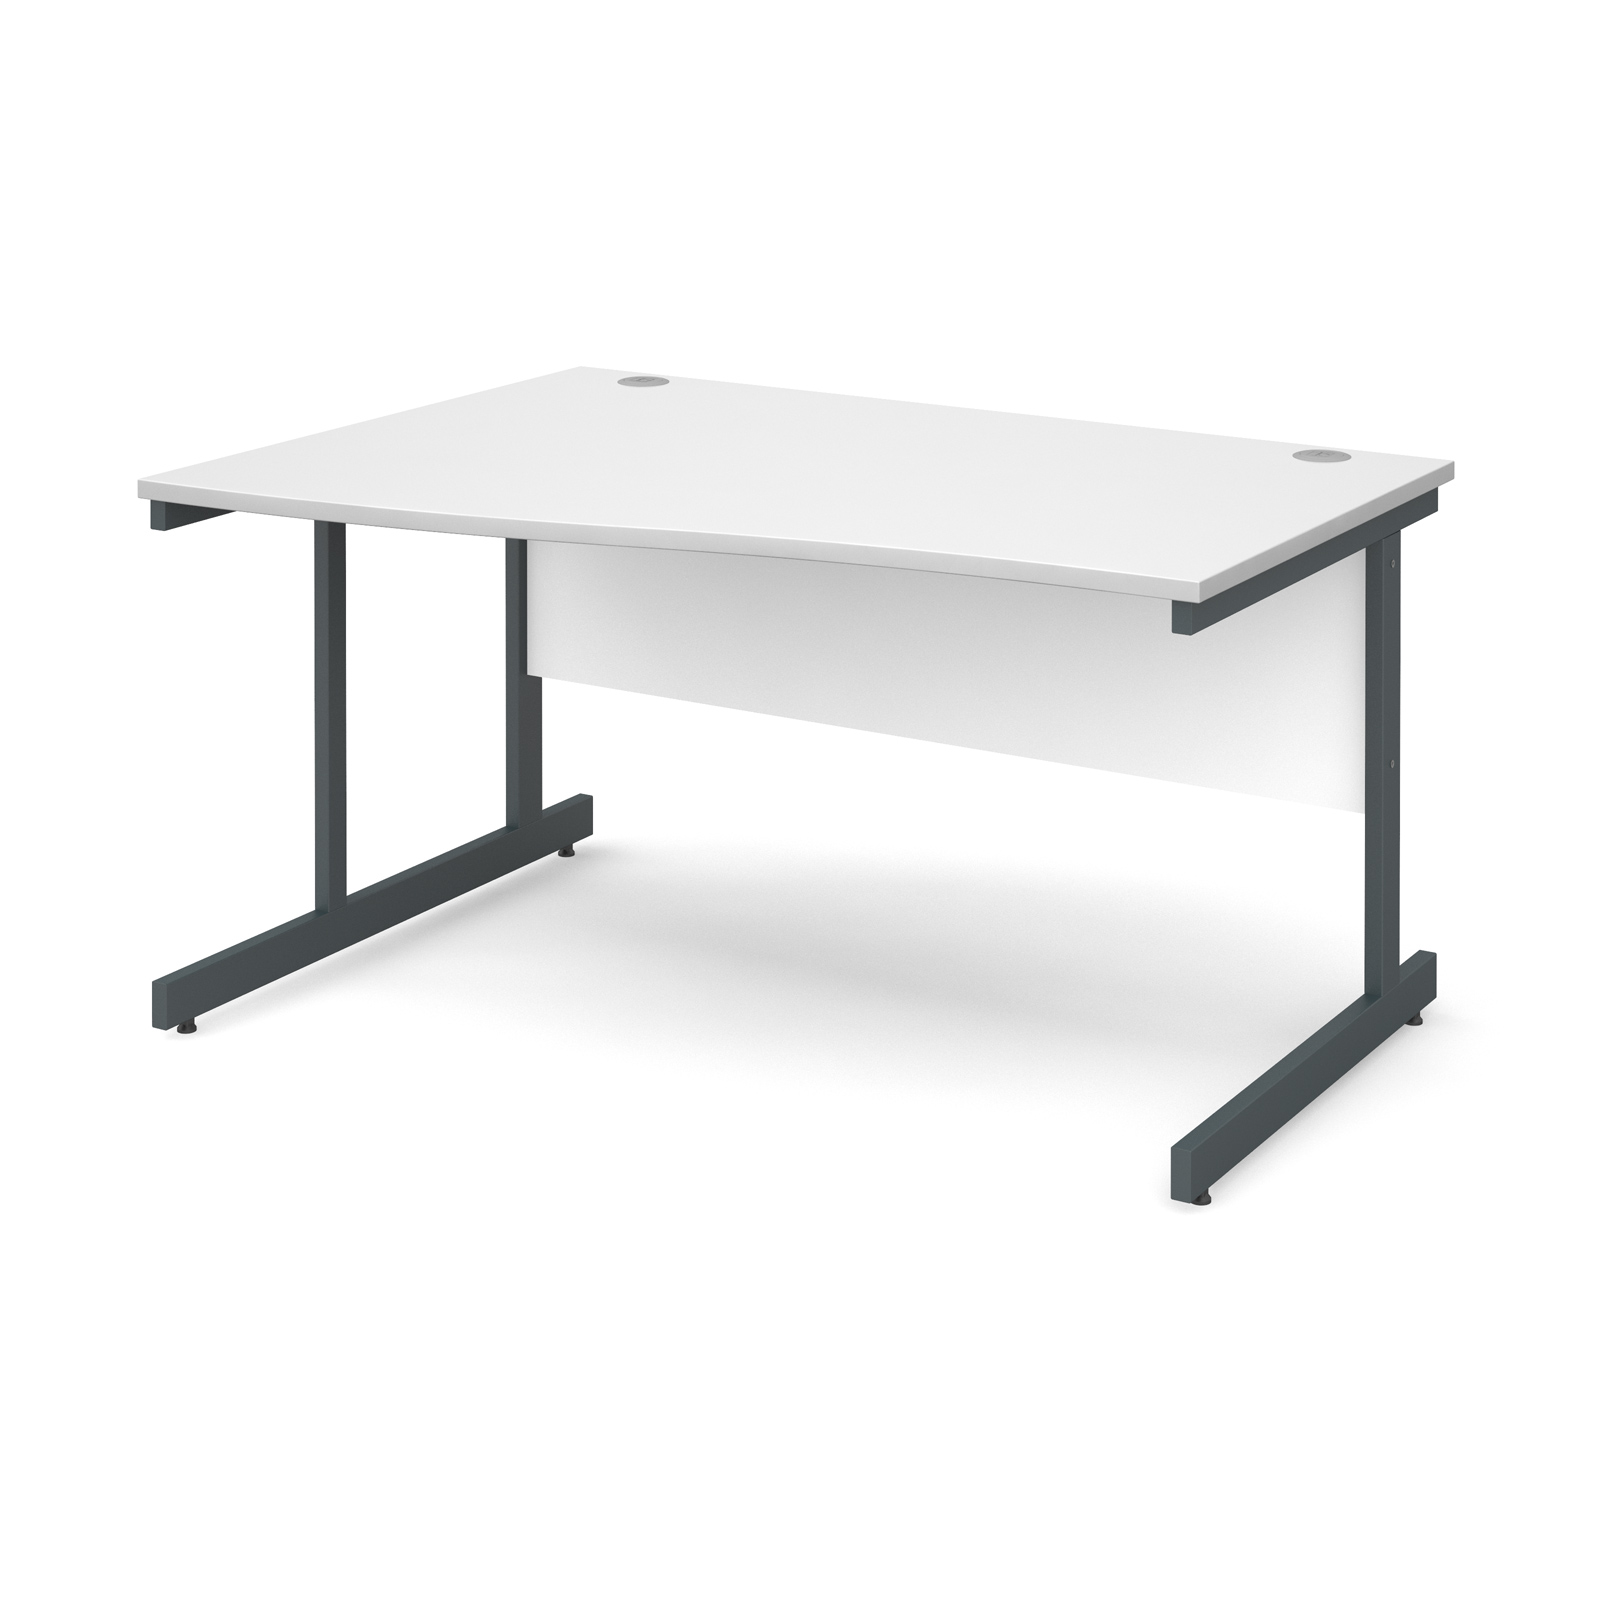 Contract 25 left hand wave desk 1400mm - graphite cantilever frame, white top